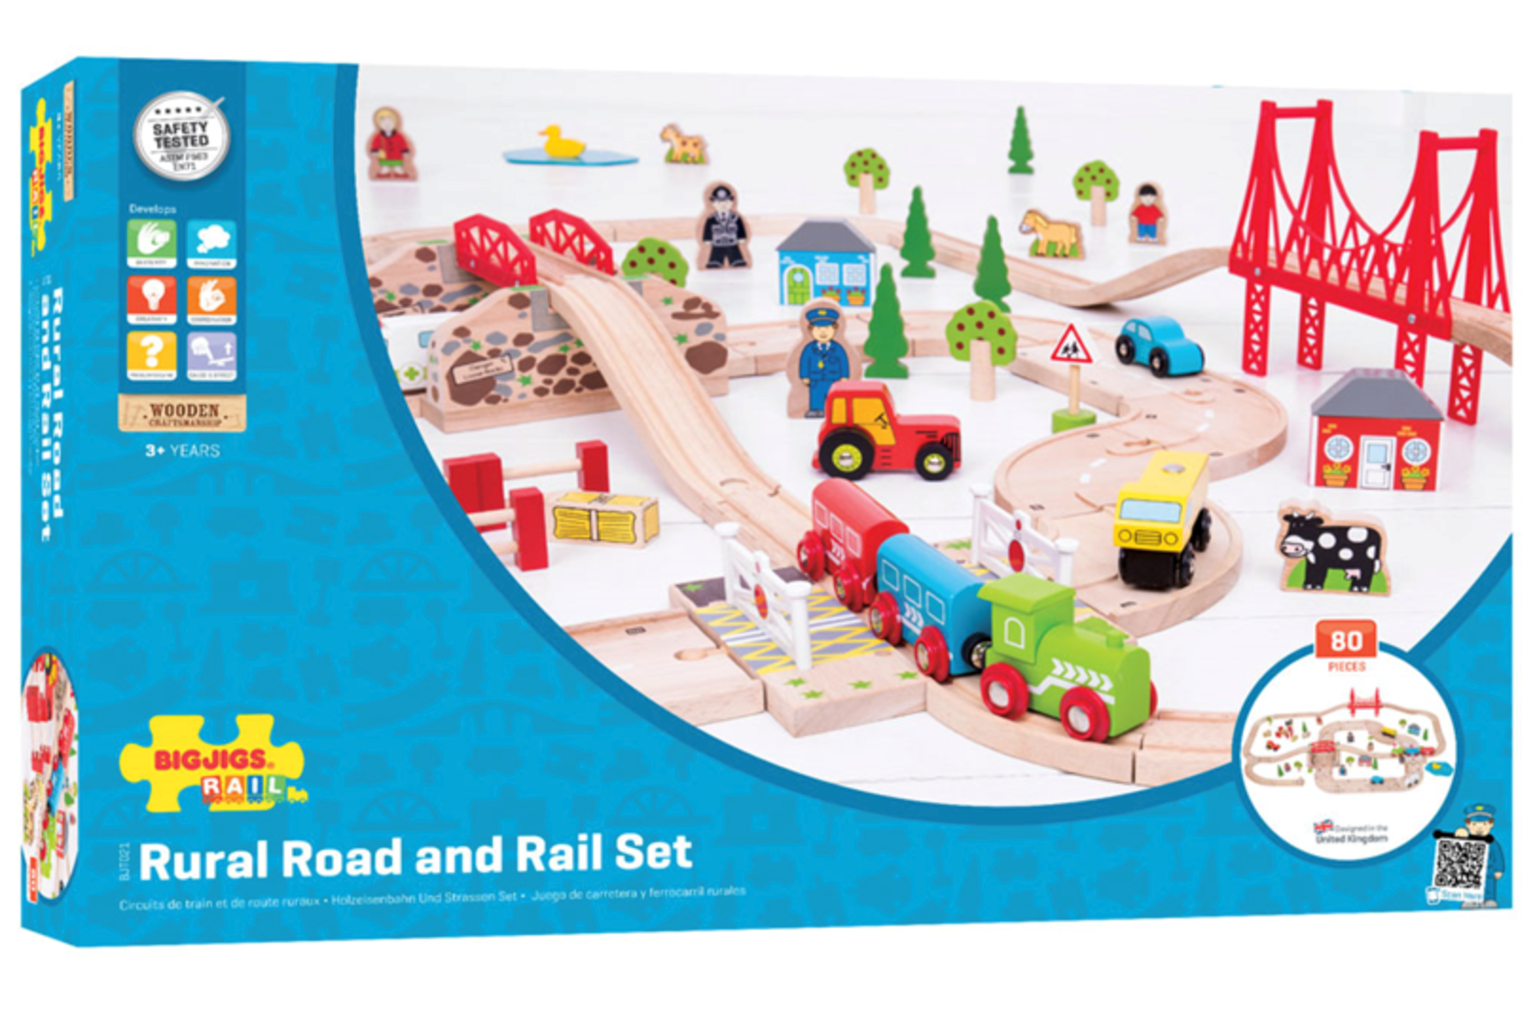 Rural Rail and Road Set